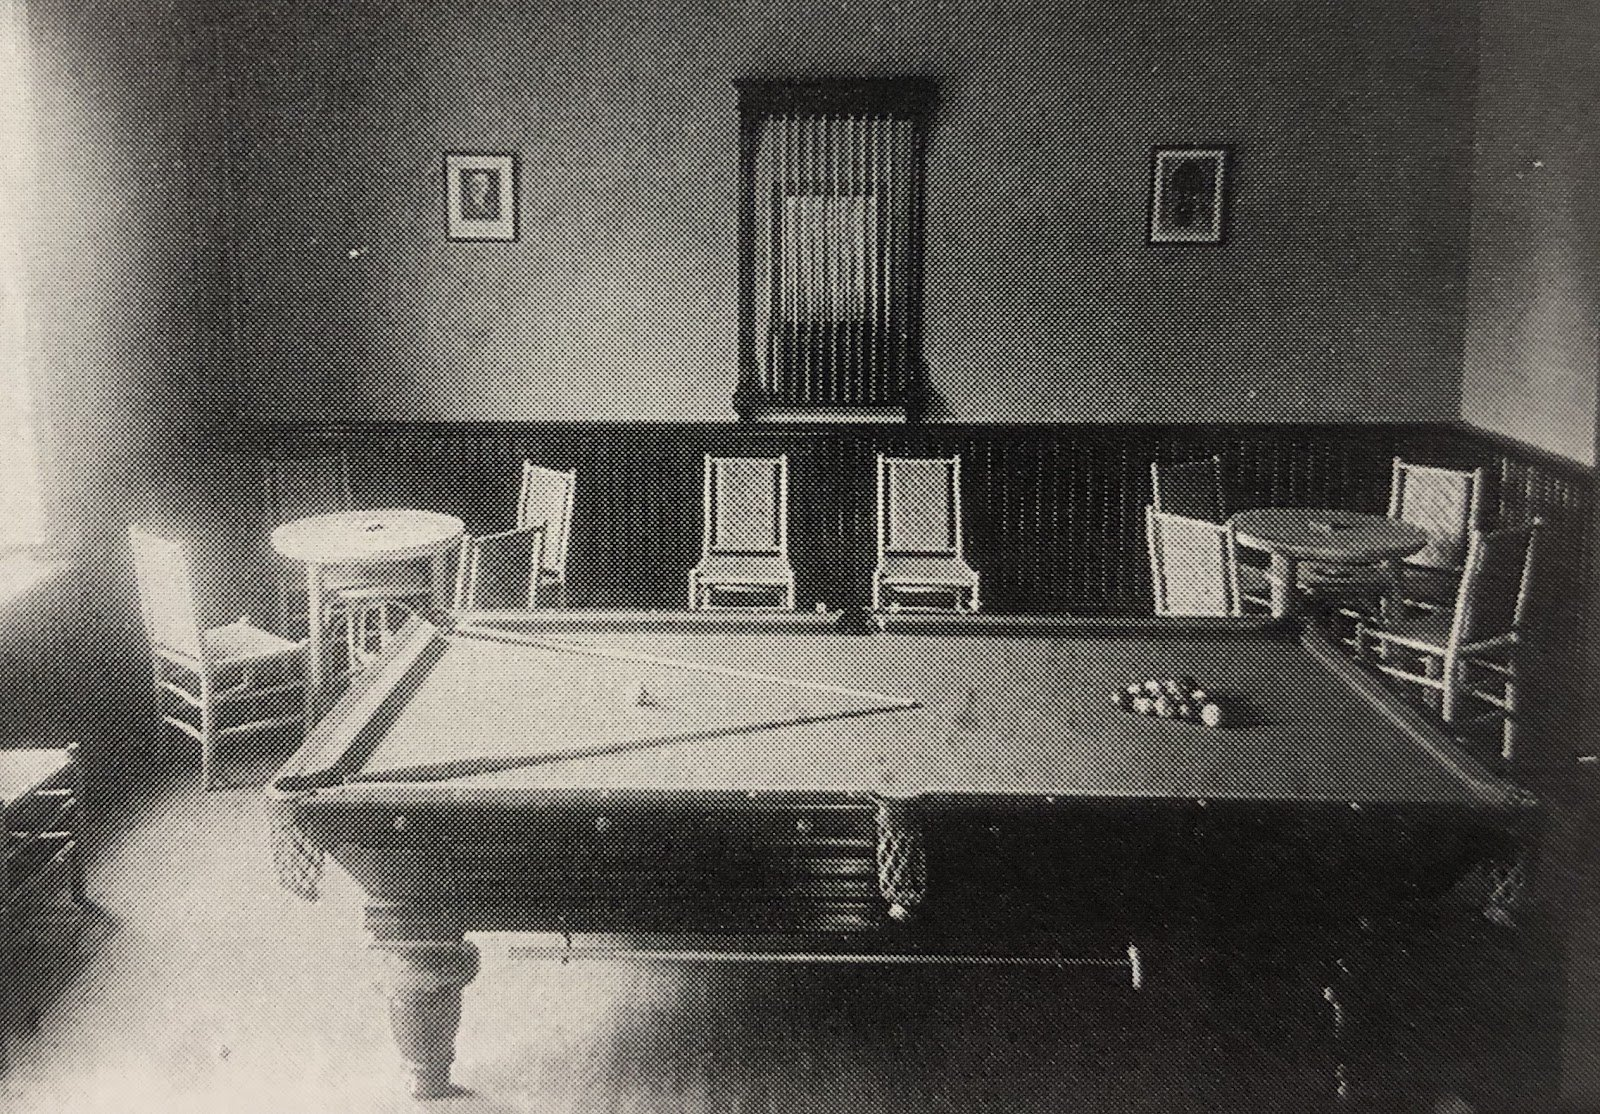 Billiard's room in St. Leo's Hall. Source: Paschal Baumstein, Blessings in the Years to Come (1997)